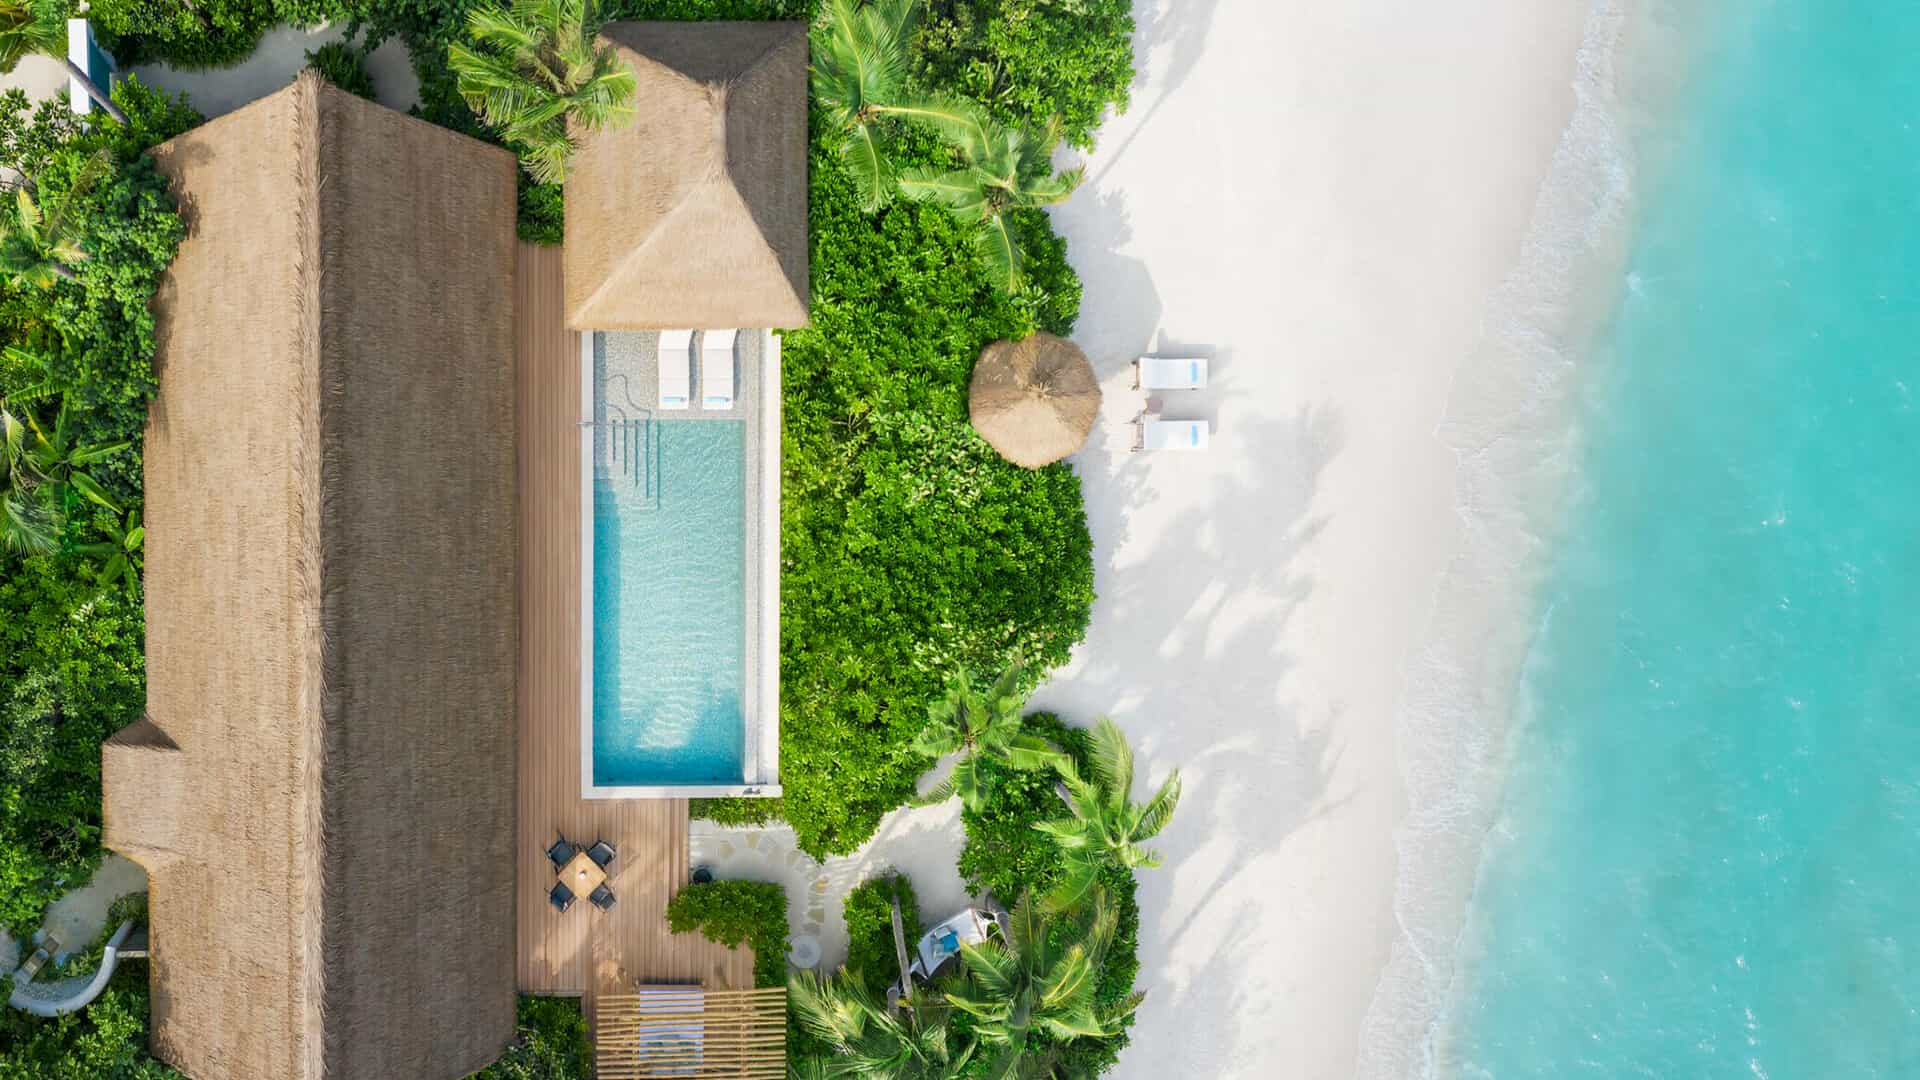 Resort Maldive Waldorf Astoria Maldives beach villa